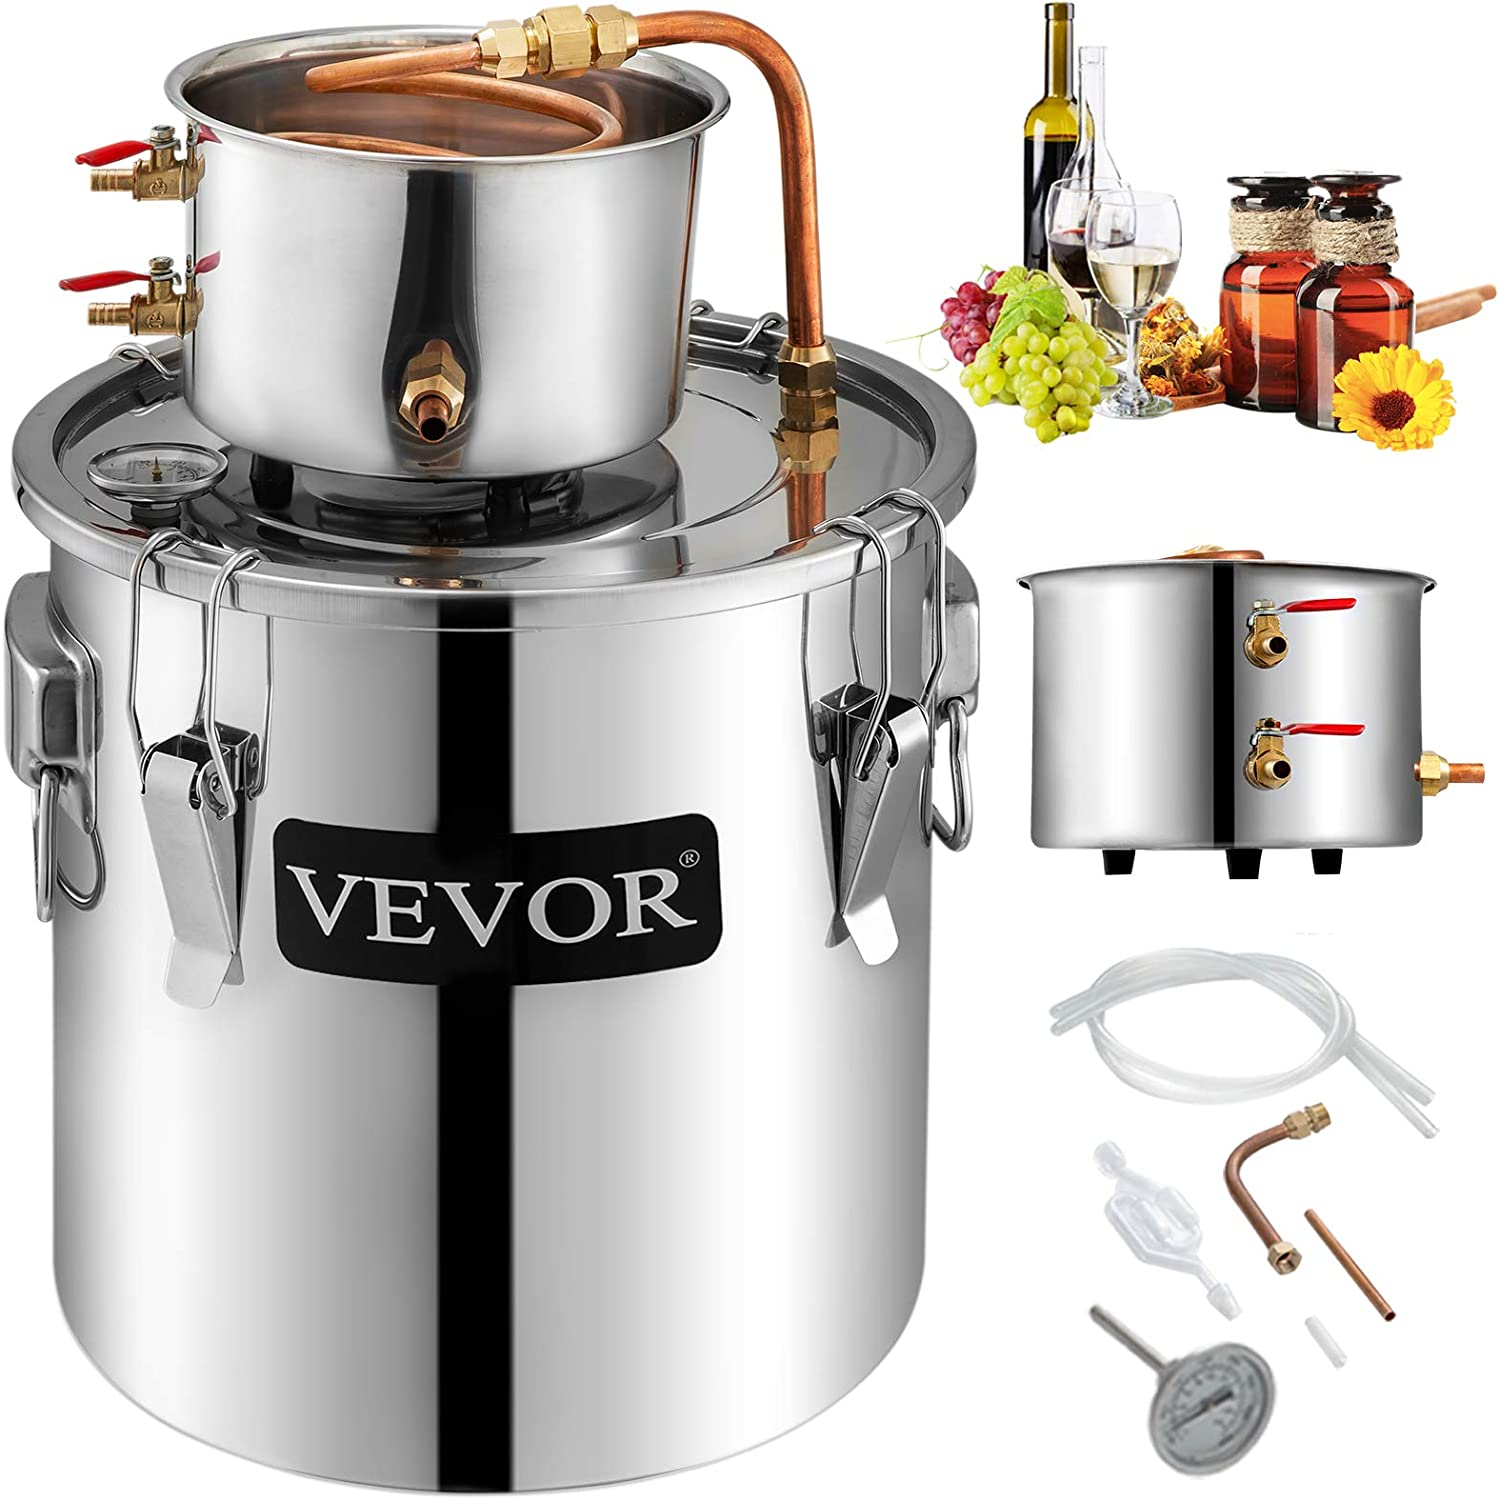 VEVOR Moonshine Still 9.6Gal 38L Stainless Steel Water Alcohol Distiller Copper Tube Home Brewing Kit Build-in Thermometer for DIY Whisky Wine Brandy, Sliver